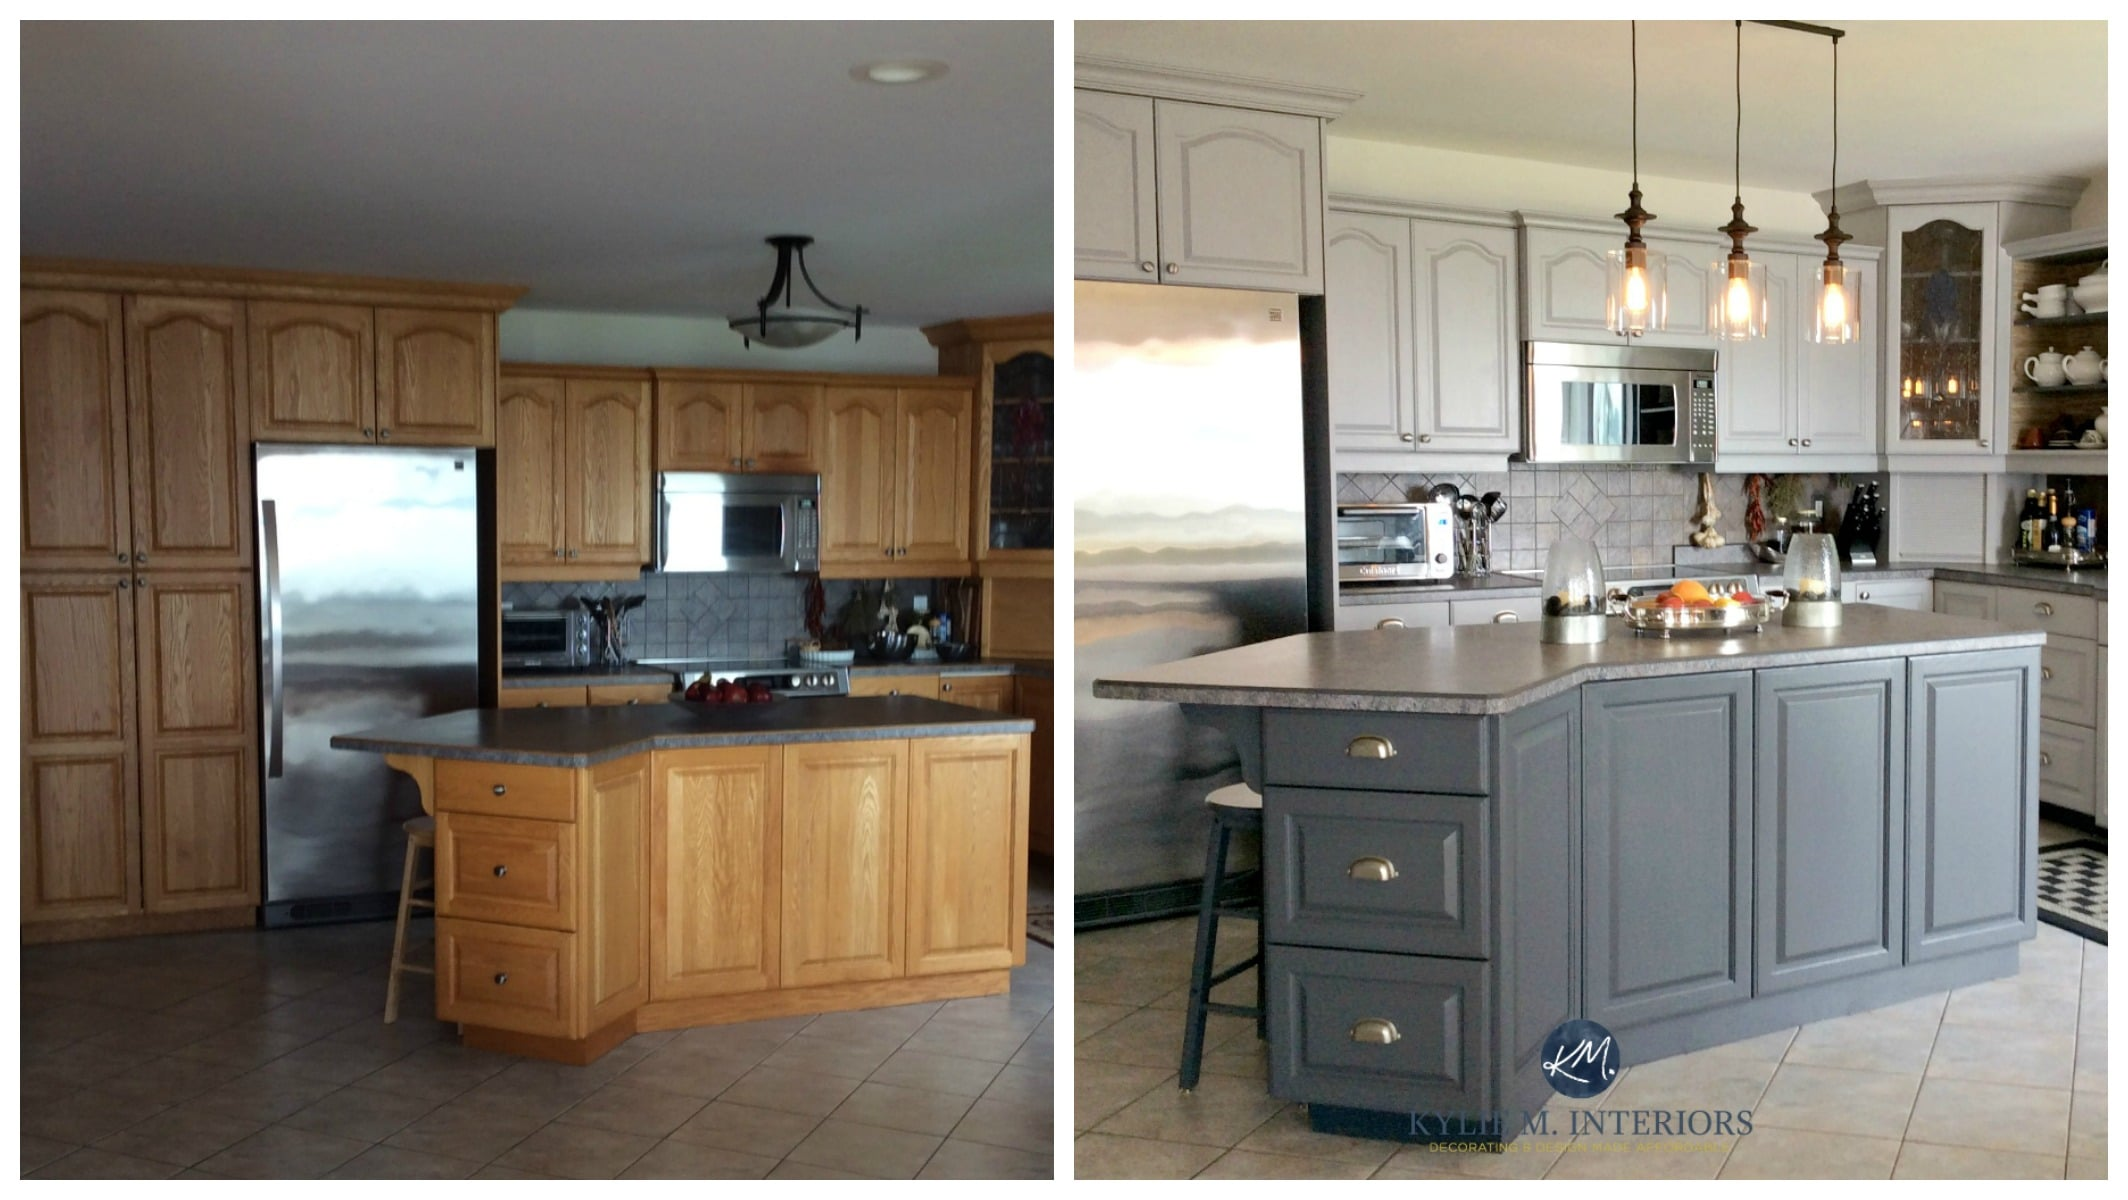 Our Painted Maple Cabinets – 2 Years Later on black faux painted kitchen cabinets, paint used for cabinets, blue grey painted kitchen cabinets, can you paint white kitchen cabinets, should i paint white kitchen cabinets, gray paint oak kitchen cabinets,